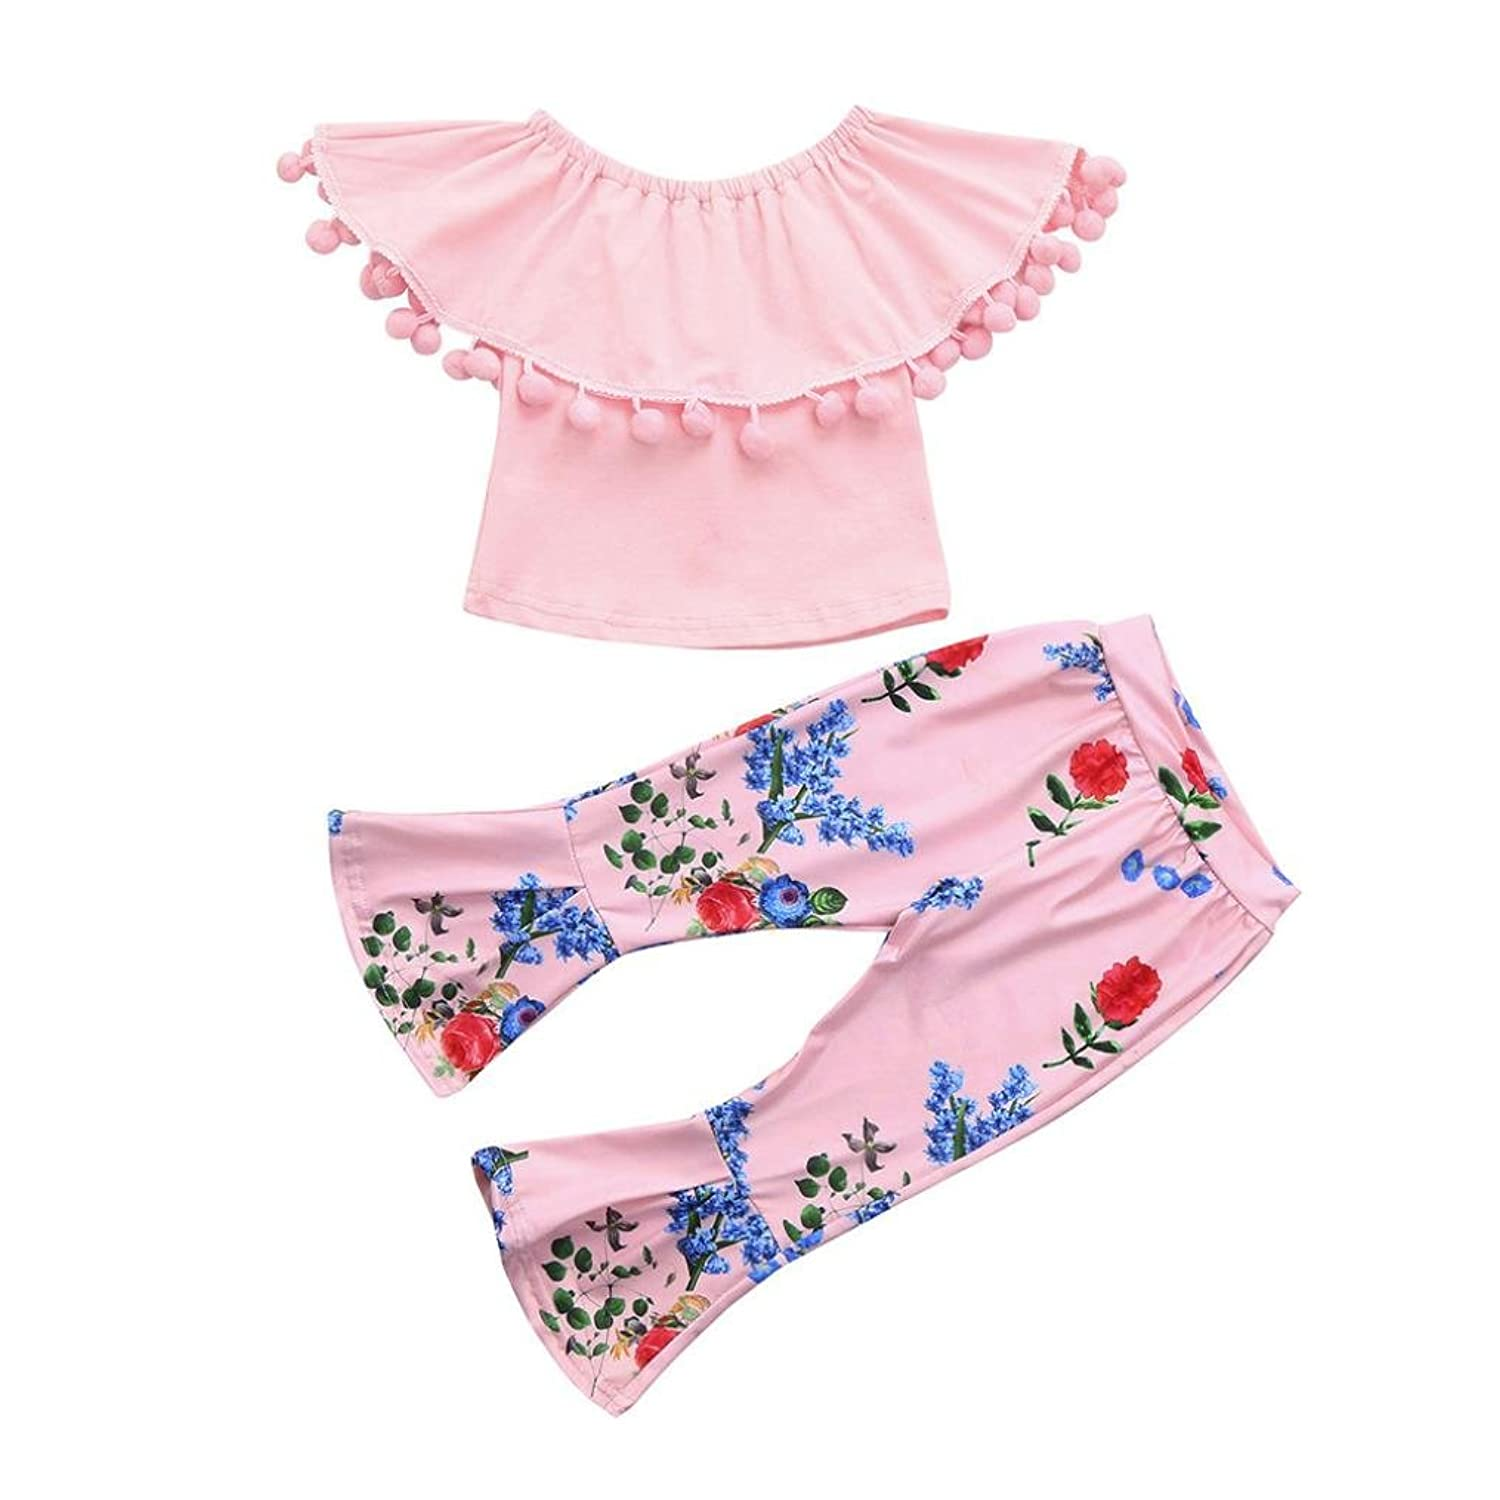 ad4a59a06 Adorable Cute Toddler Baby Girl Clothing 2pcs Outfits girls dress for  wedding easter party spring summer father daughter dance special occasion  ball ...